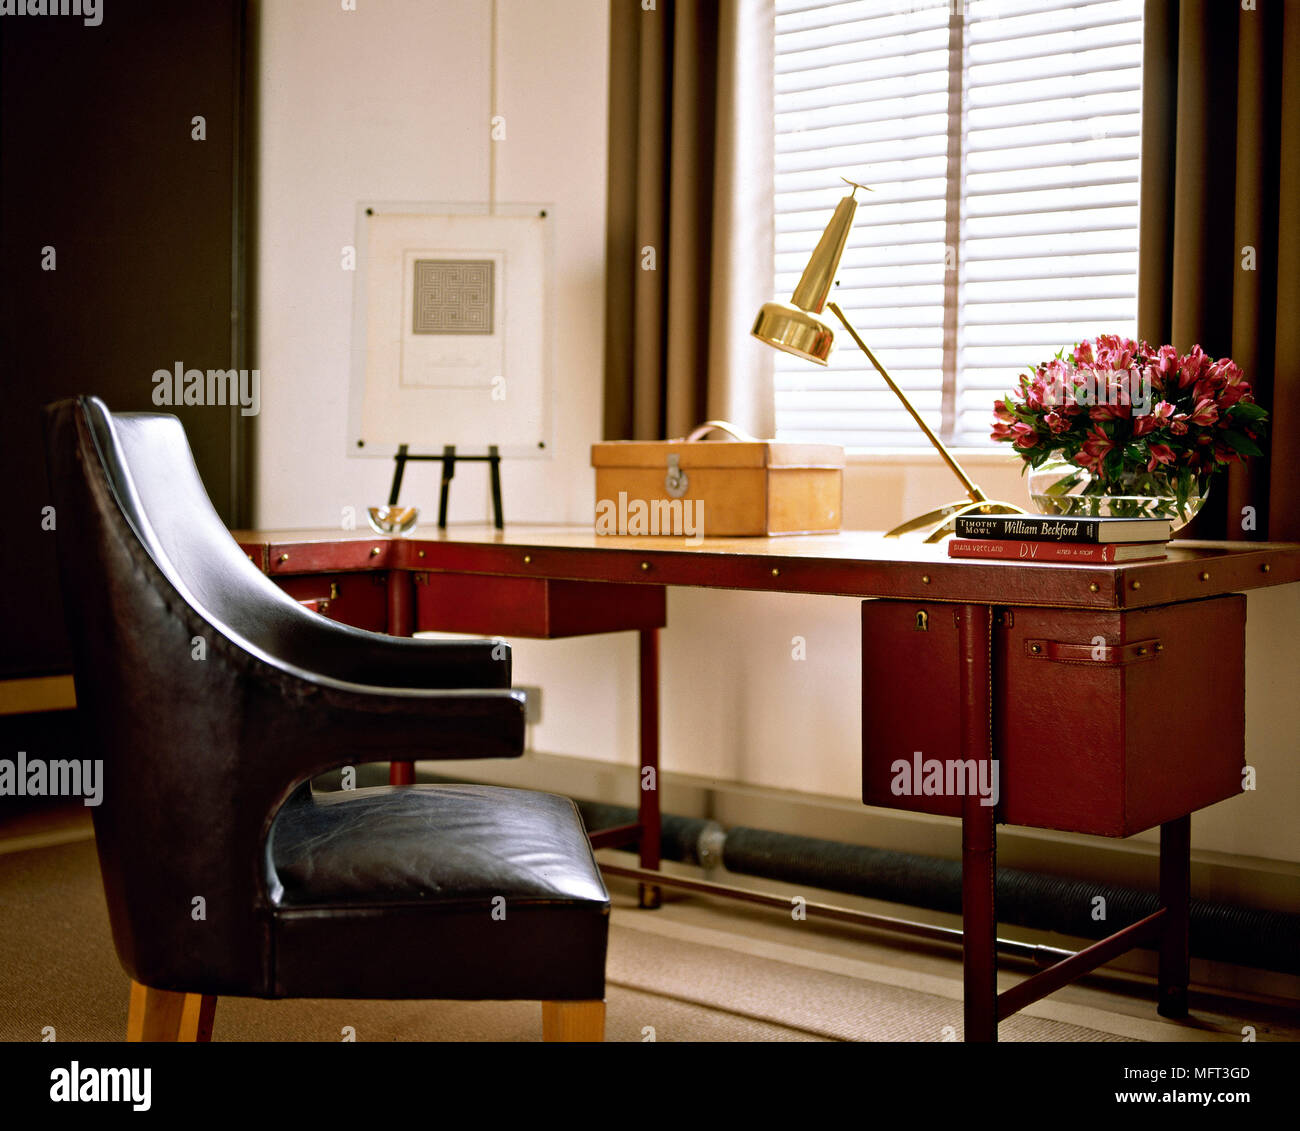 Pleasing Home Office Desk Black Leather Chair Lamp Interiors Offices Interior Design Ideas Clesiryabchikinfo